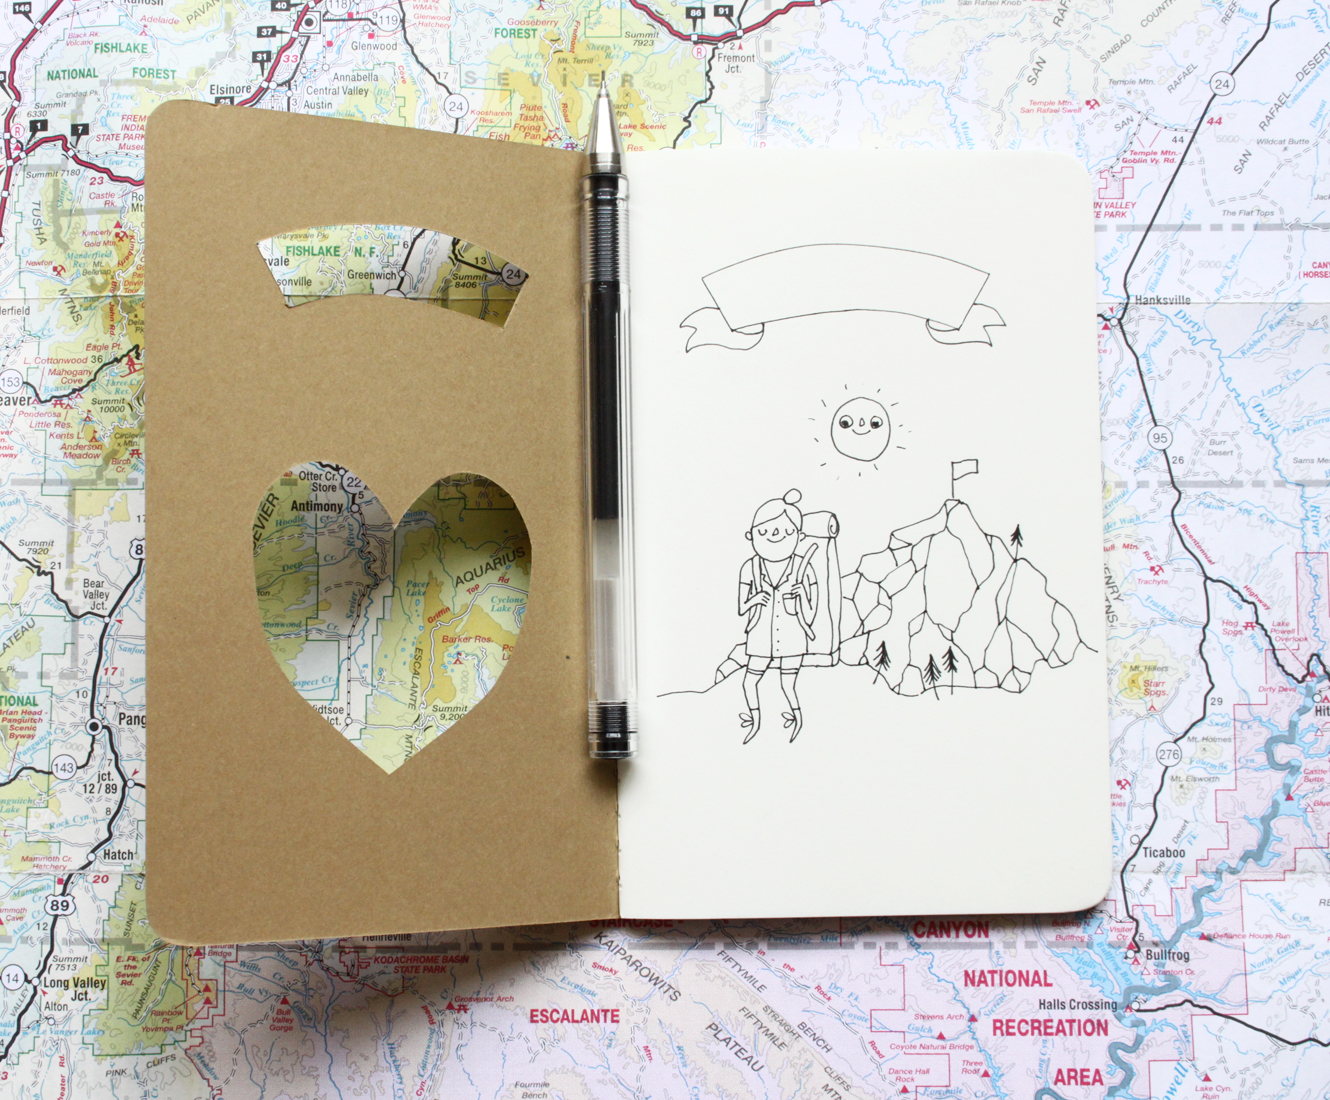 Hiker journal with cut-out heart and hiker/backpacker illustration.